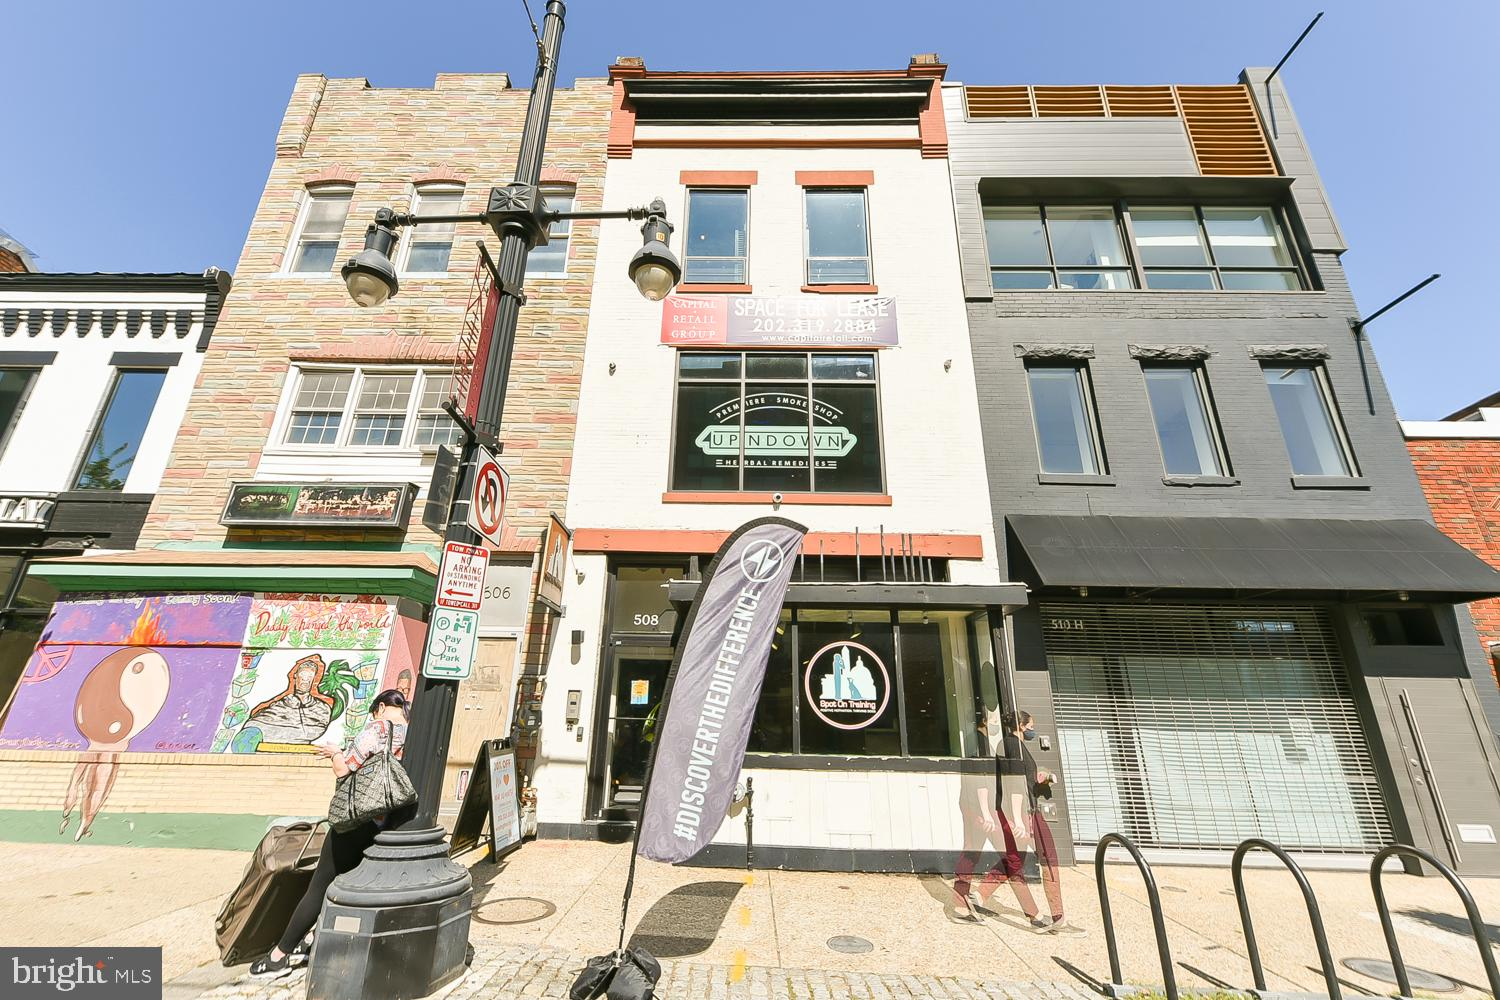 Two spaces available for lease. Office space located on 3rd floor of 508 H street NE.  $3,000 + utilities. 1st floor retail space $7,500 . Conveniently located along the H street corridor near Whole Foods and Union Station. Has kitchen, conference room, and bathroom. Wood floors. $40 app fee. Two month deposit. New windows allow for plentiful natural light. Great opportunity for anyone wanting a presence along H. Check out the virtual tour